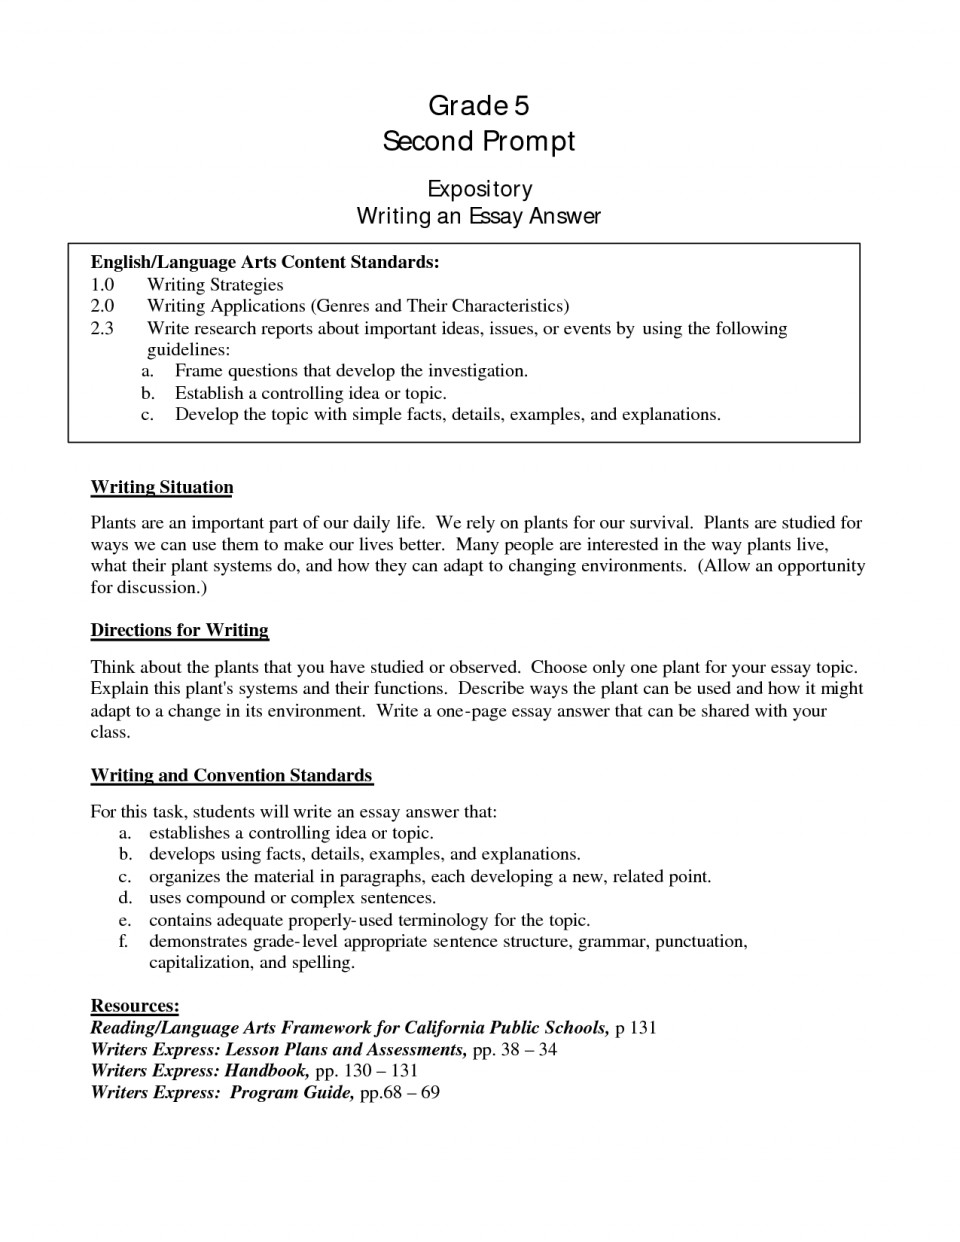 006 Essay Example Expository Introduction Of An Paper Intorduction For Research Best Bunch Ideas Writing Examples Epic Introductions Resumess Explanatory Fascinating Topics Informative College High School Prompt 4th Grade 960